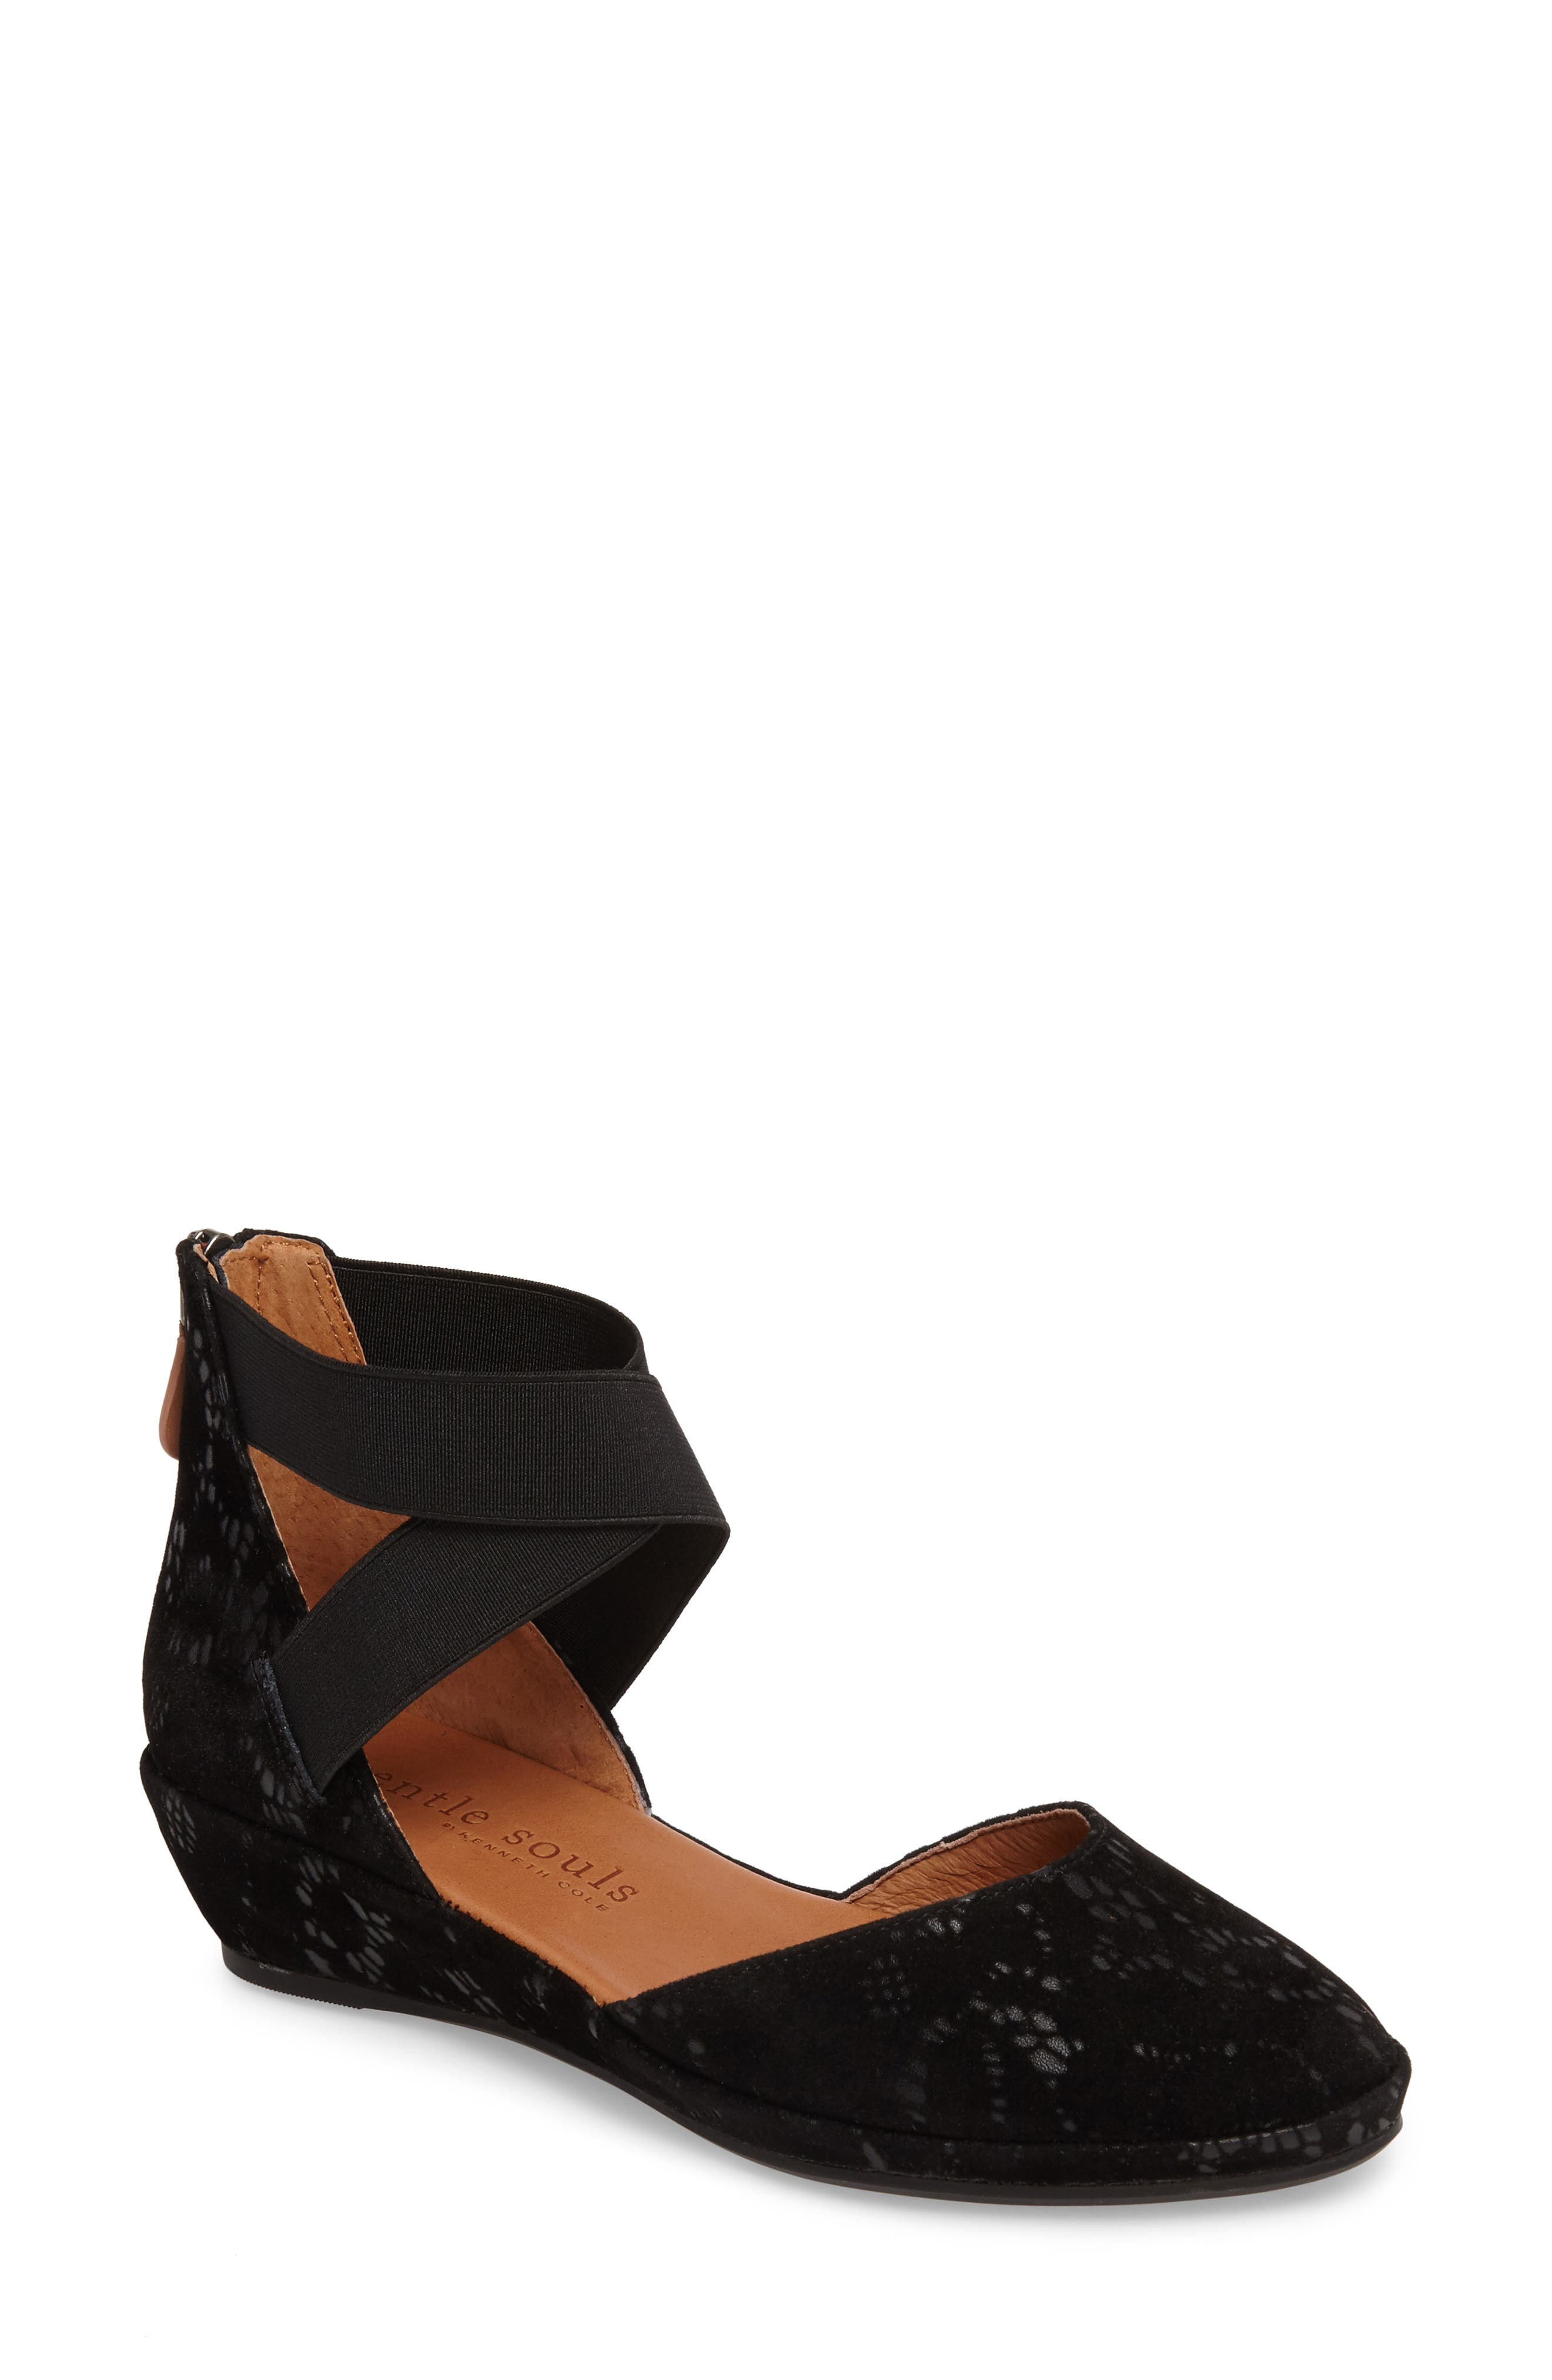 BY KENNETH COLE NOA CROSS STRAP WEDGE